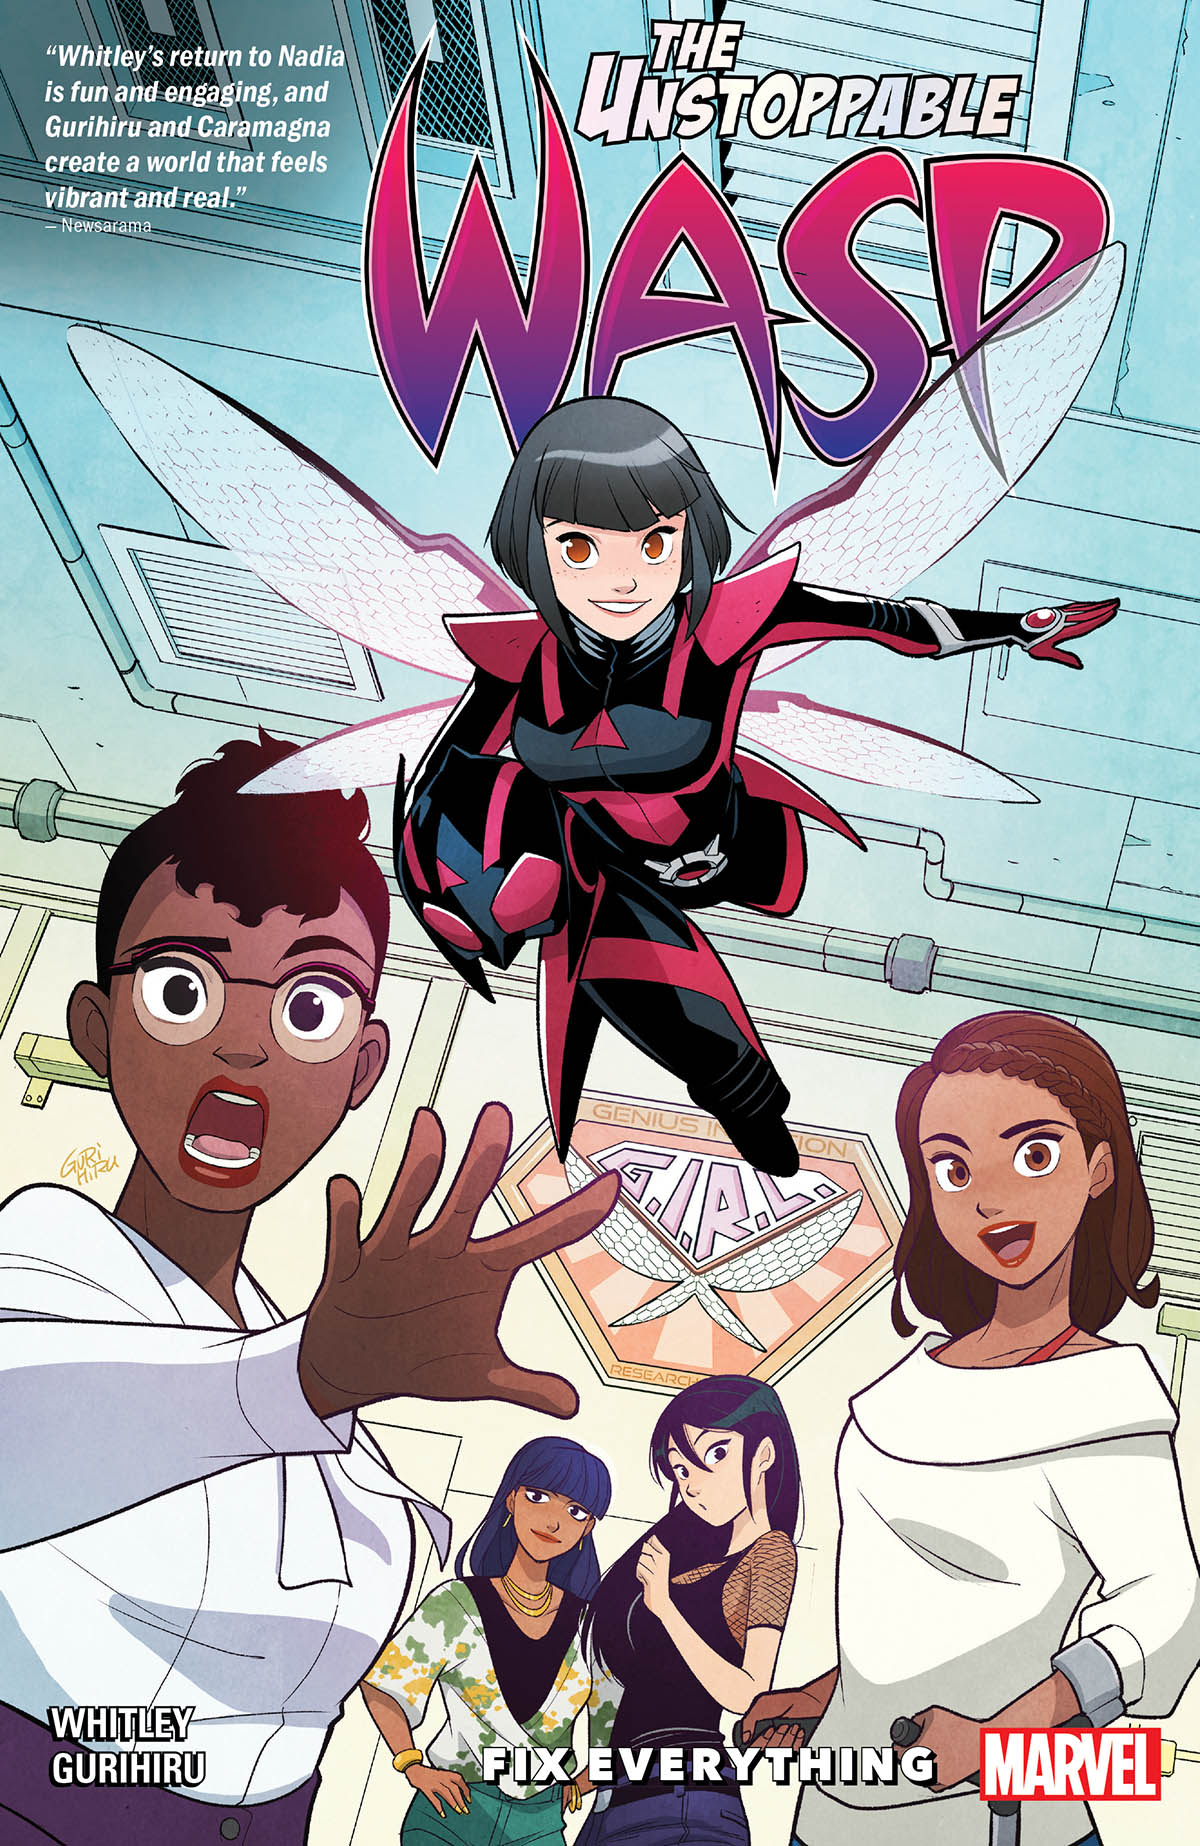 The Unstoppable Wasp: Unlimited Vol. 1: Fix Everything (Trade Paperback)